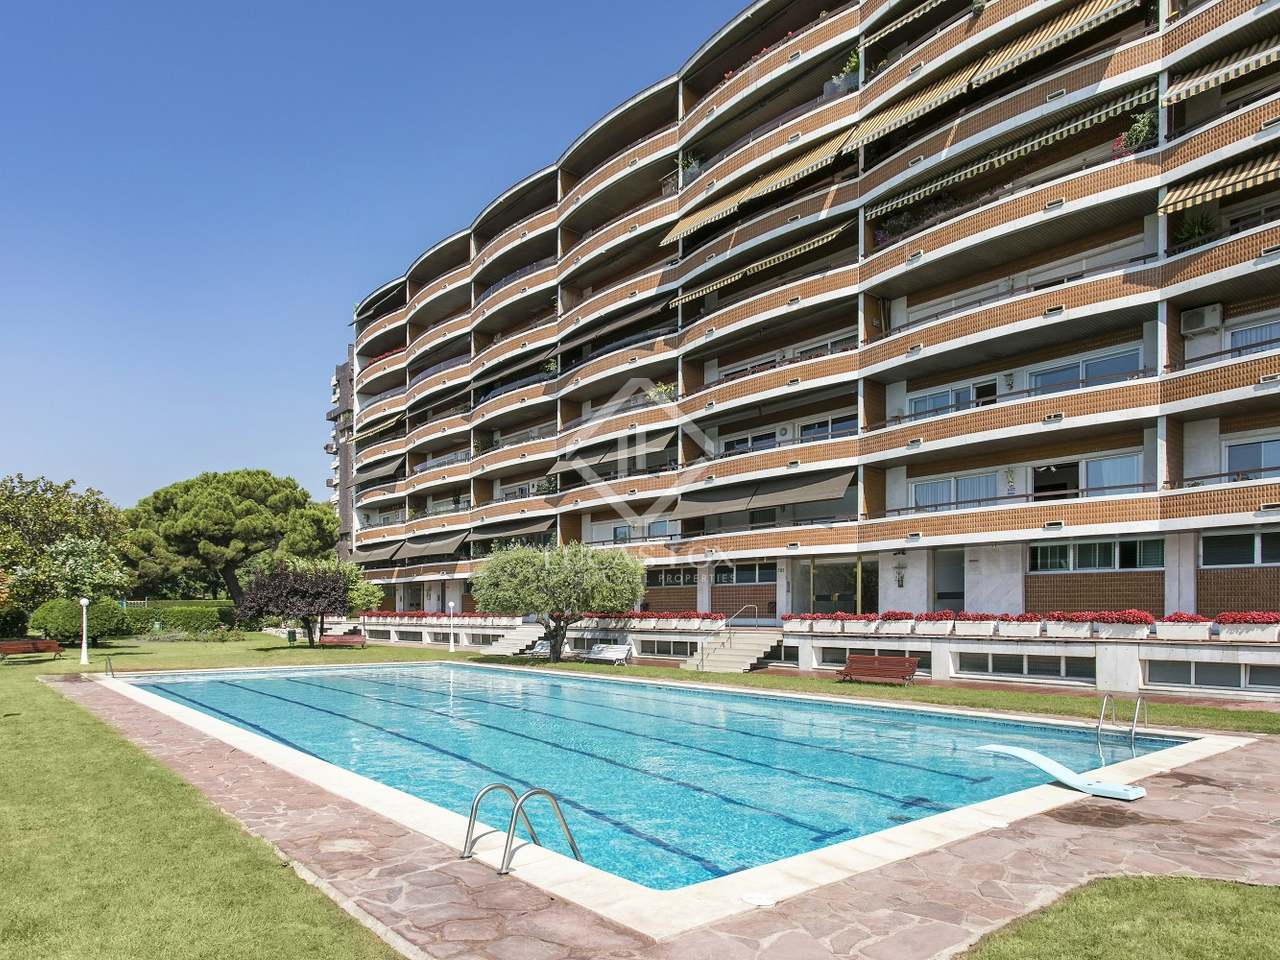 Appartement de 175m a louer les corts barcelone for Appartement piscine barcelone